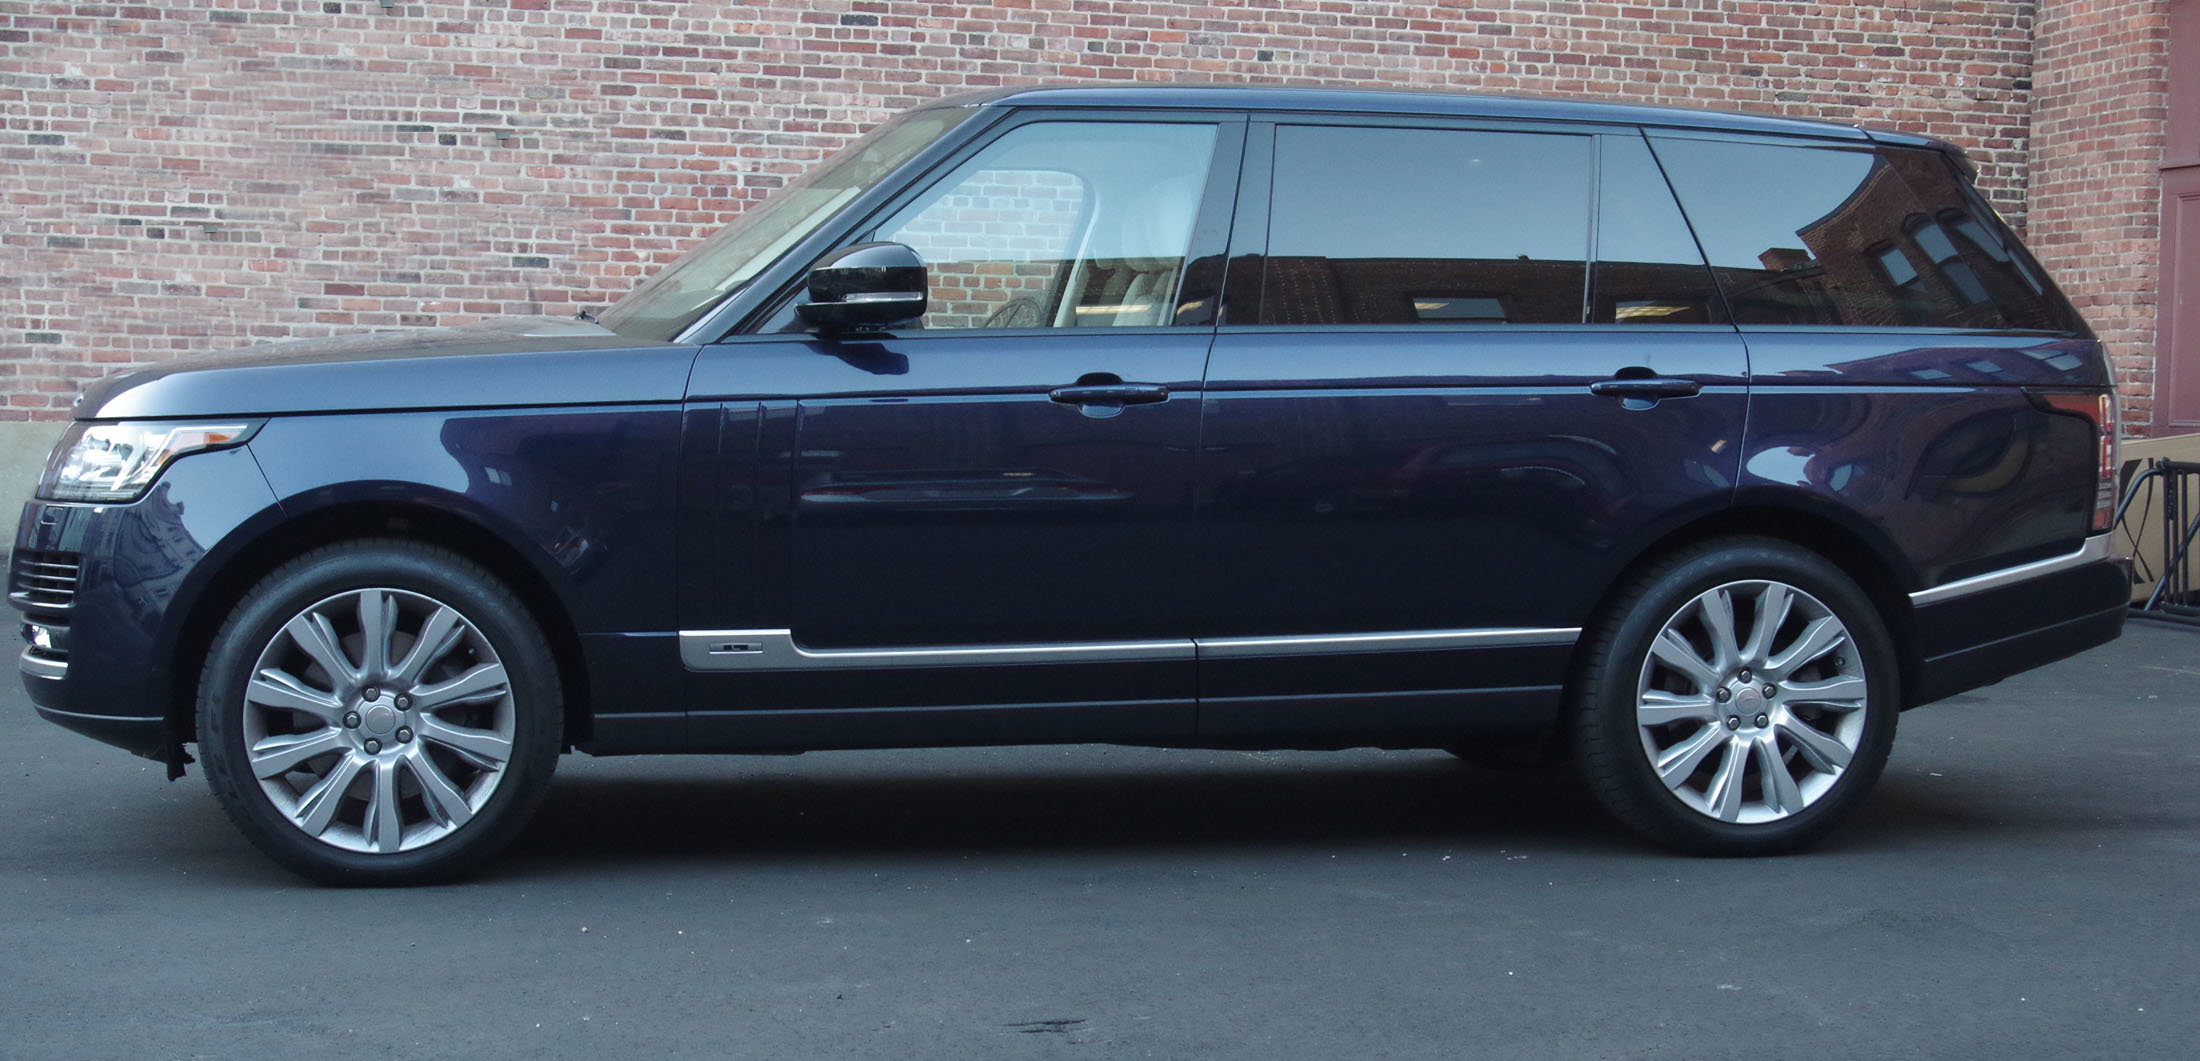 2014 Range Rover Long Wheelbase Everything But the Driver